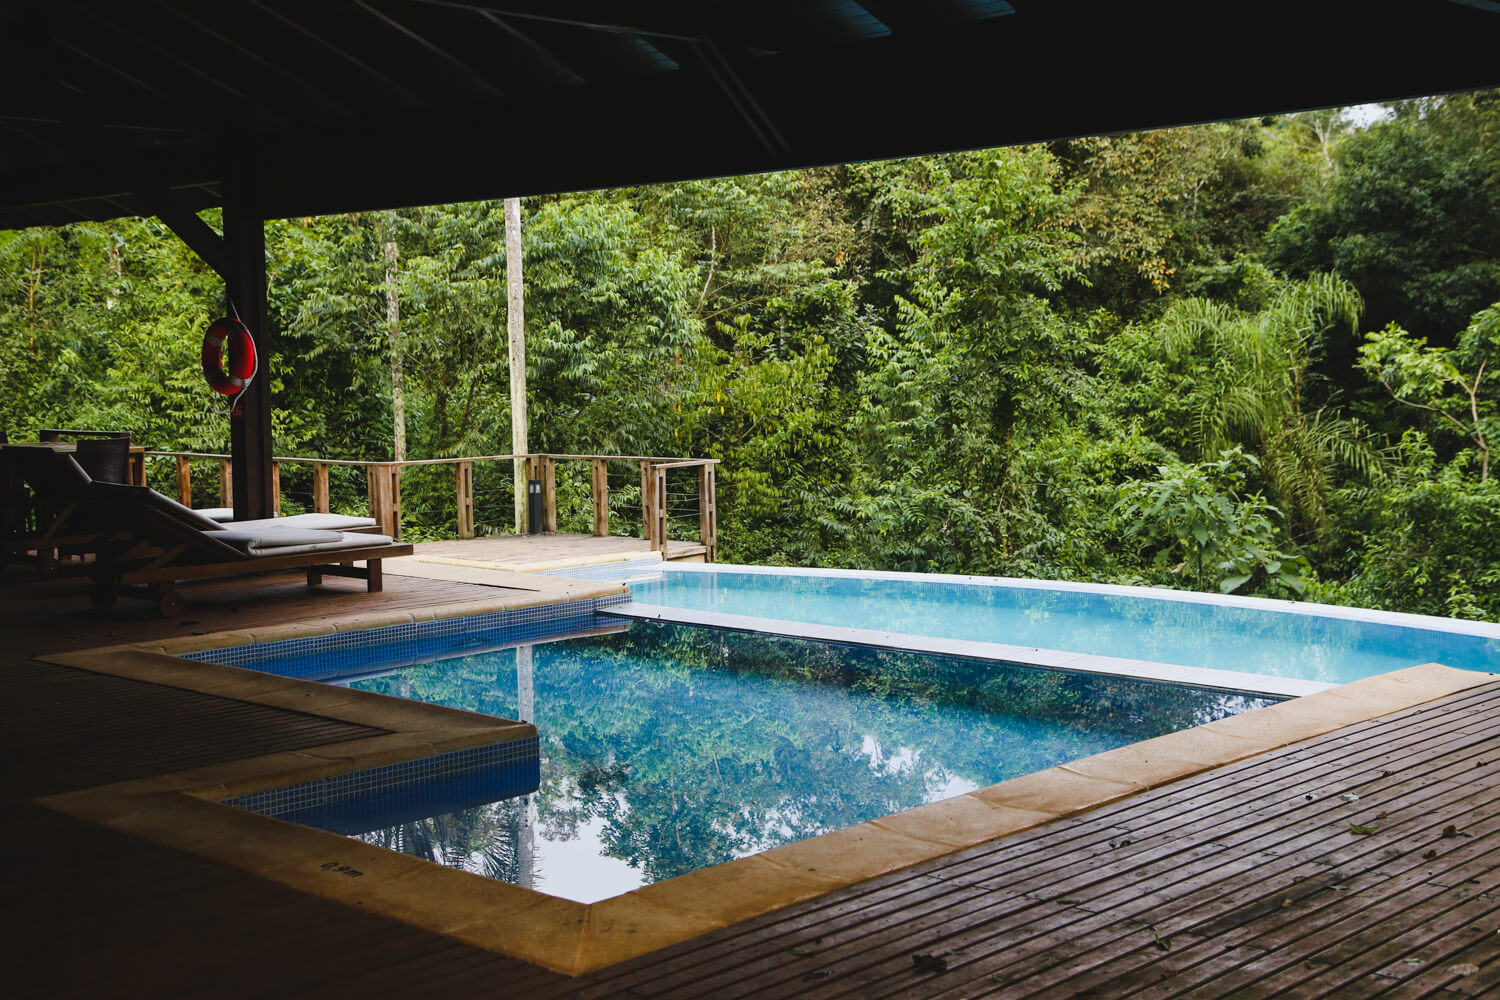 This swimming pool alone is worth staying at the Mocona Virgin Lodge.